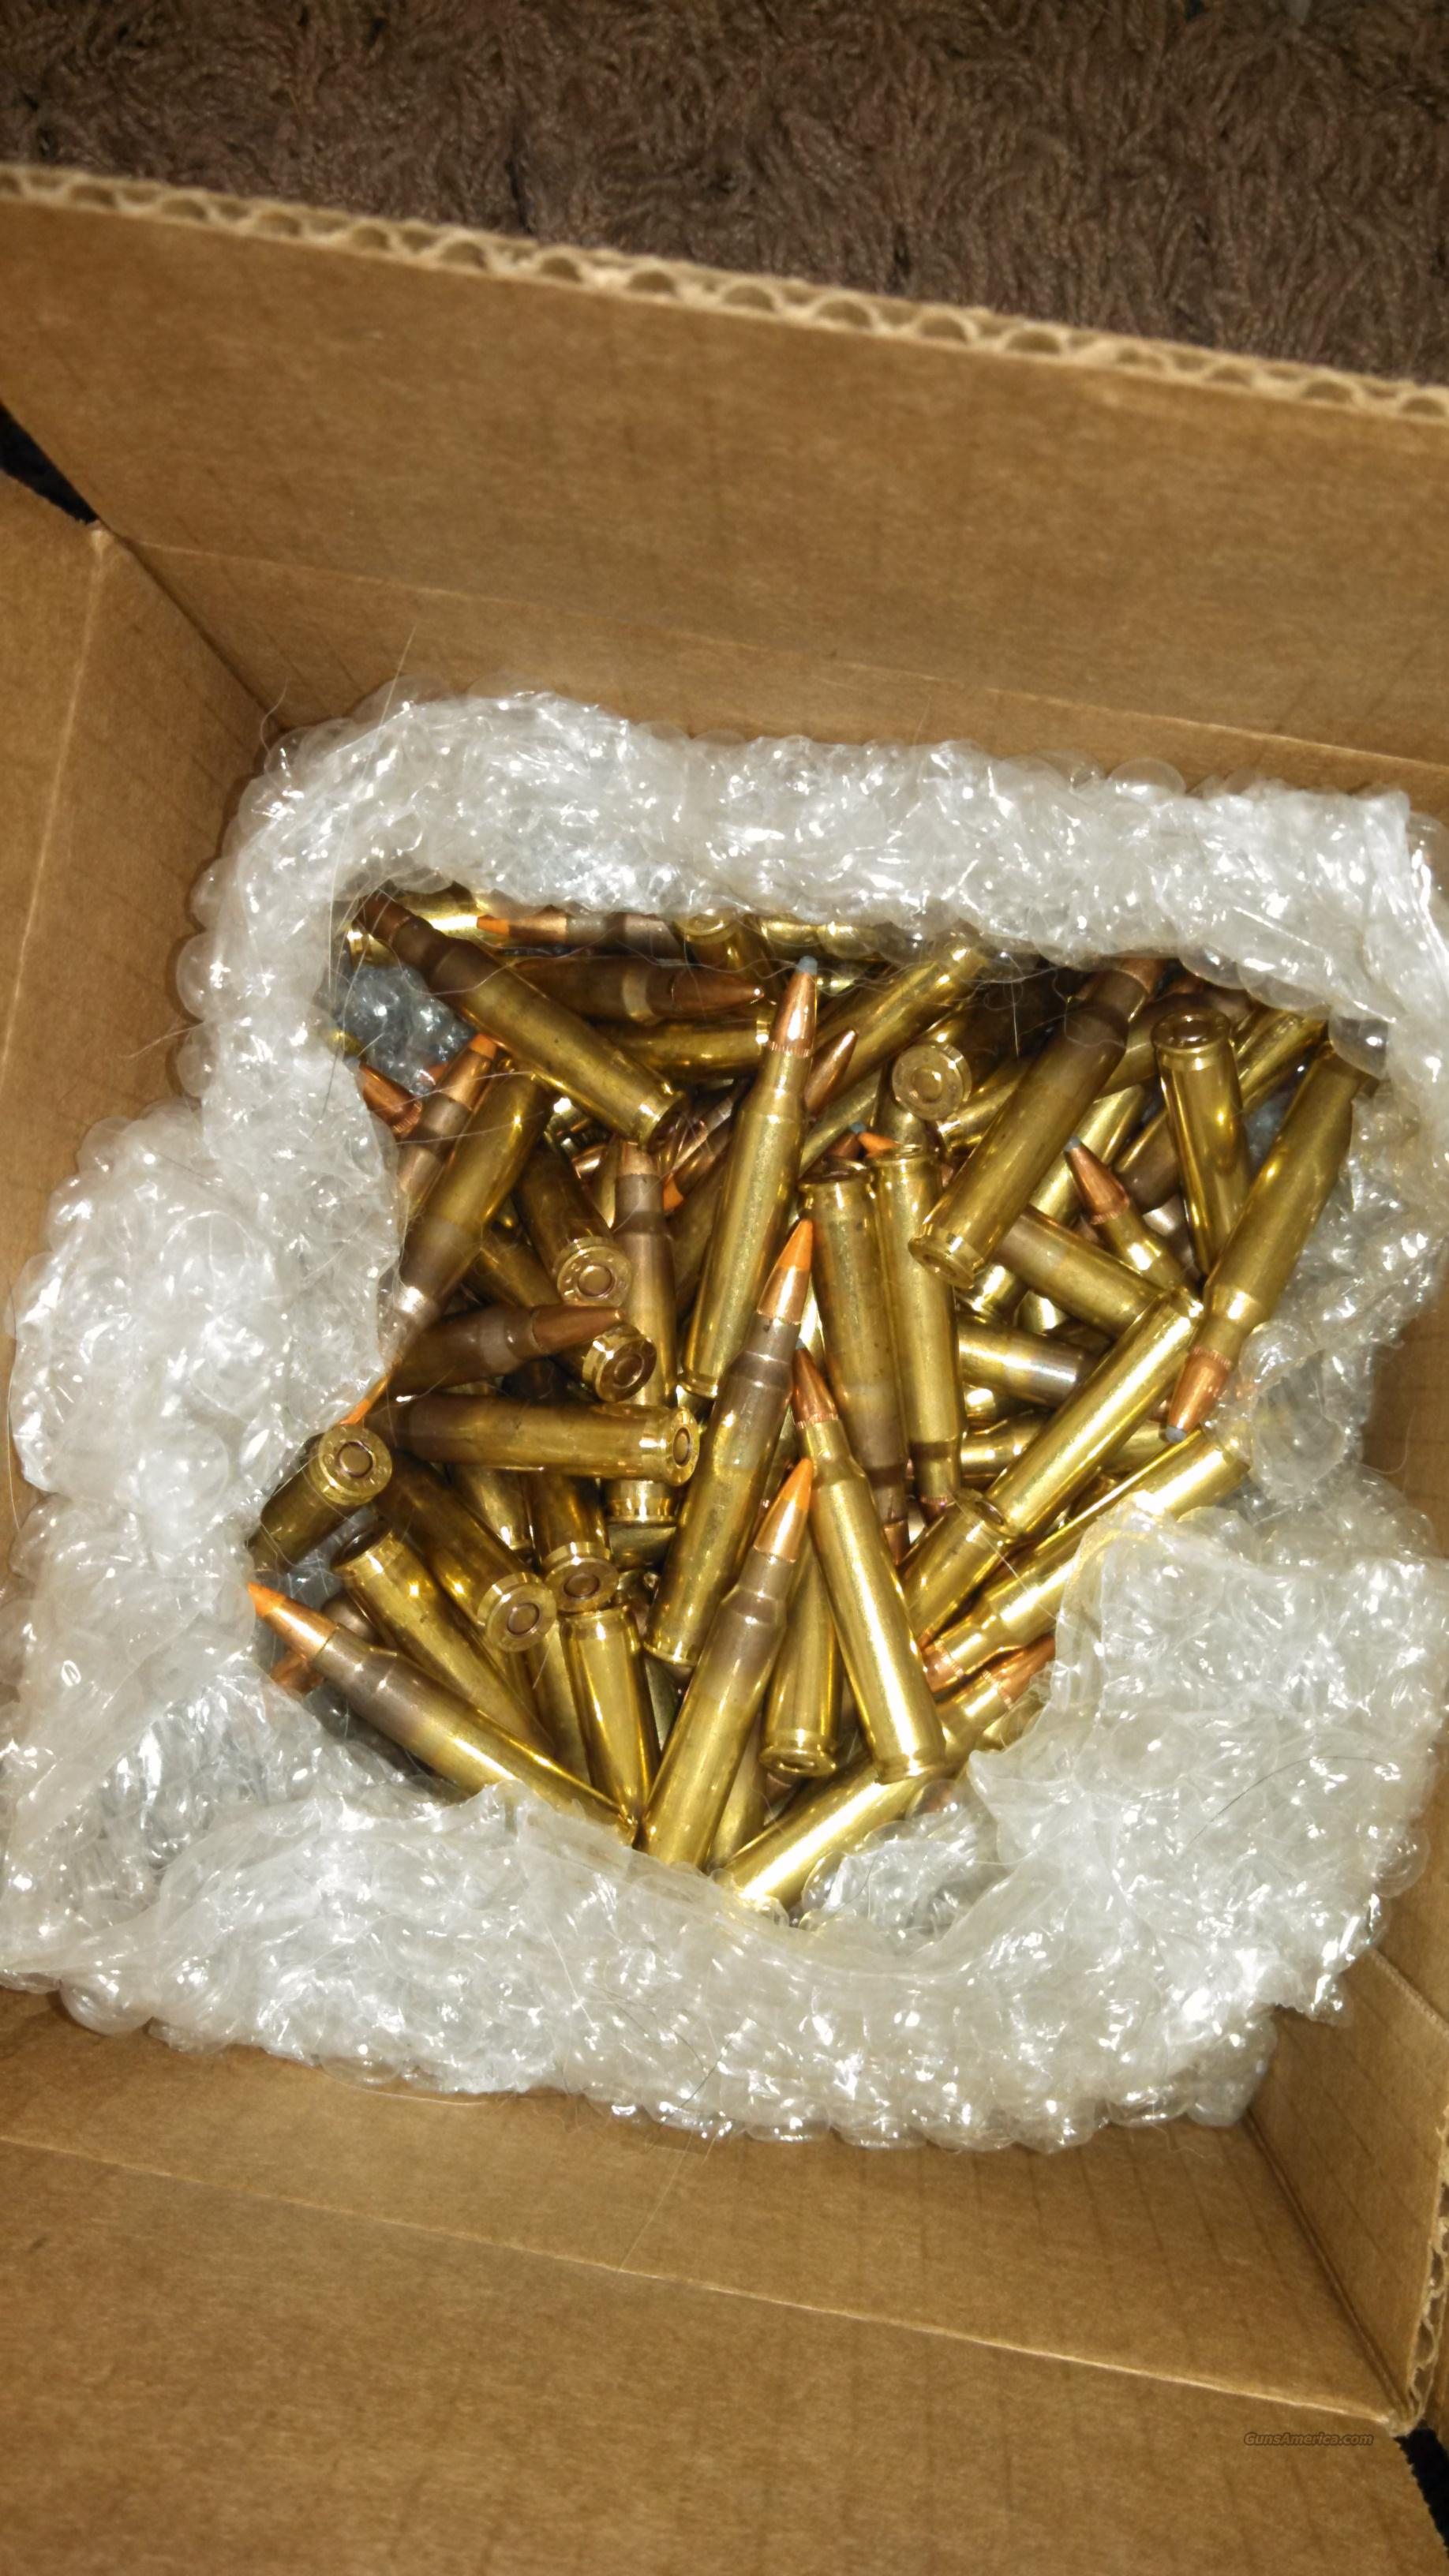 223 ammo mix of tracers, fmj, and zombie rounds  Non-Guns > Ammunition